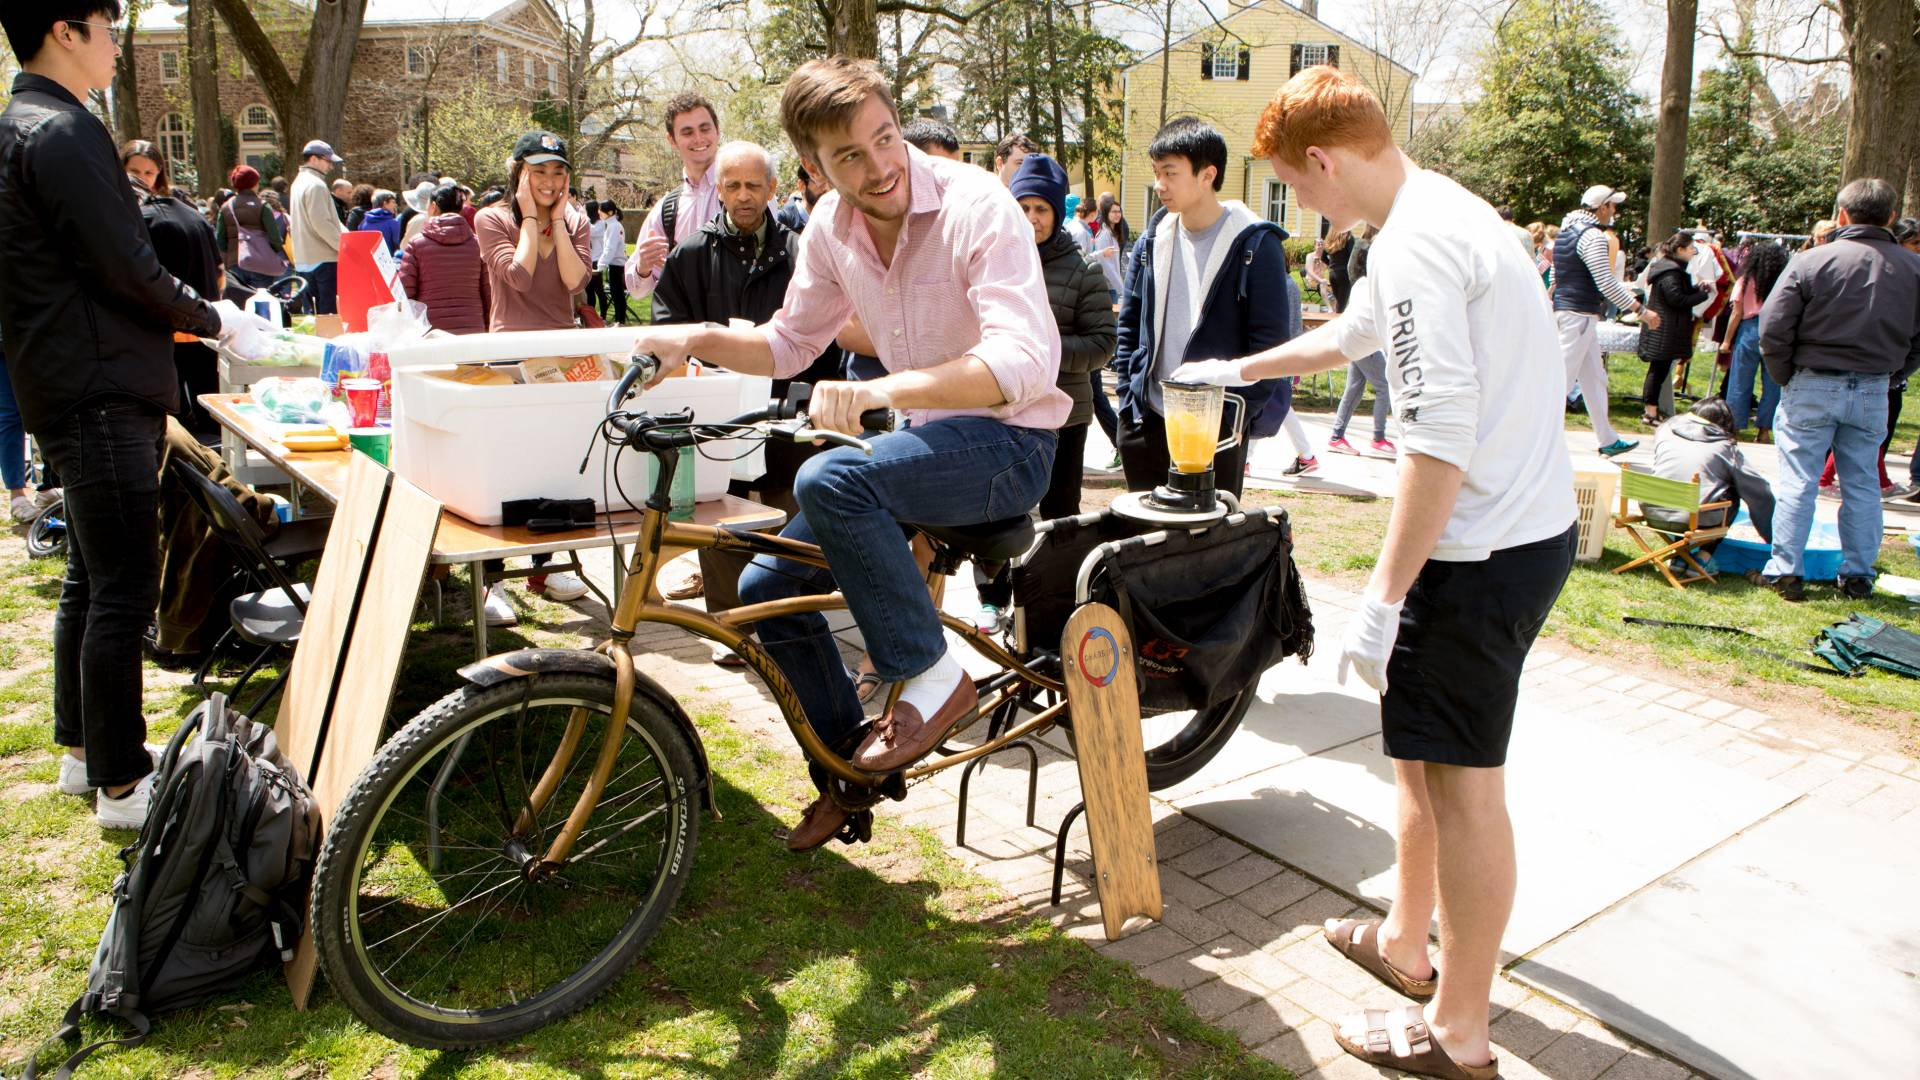 Student pedaling bicycle to power up a blender